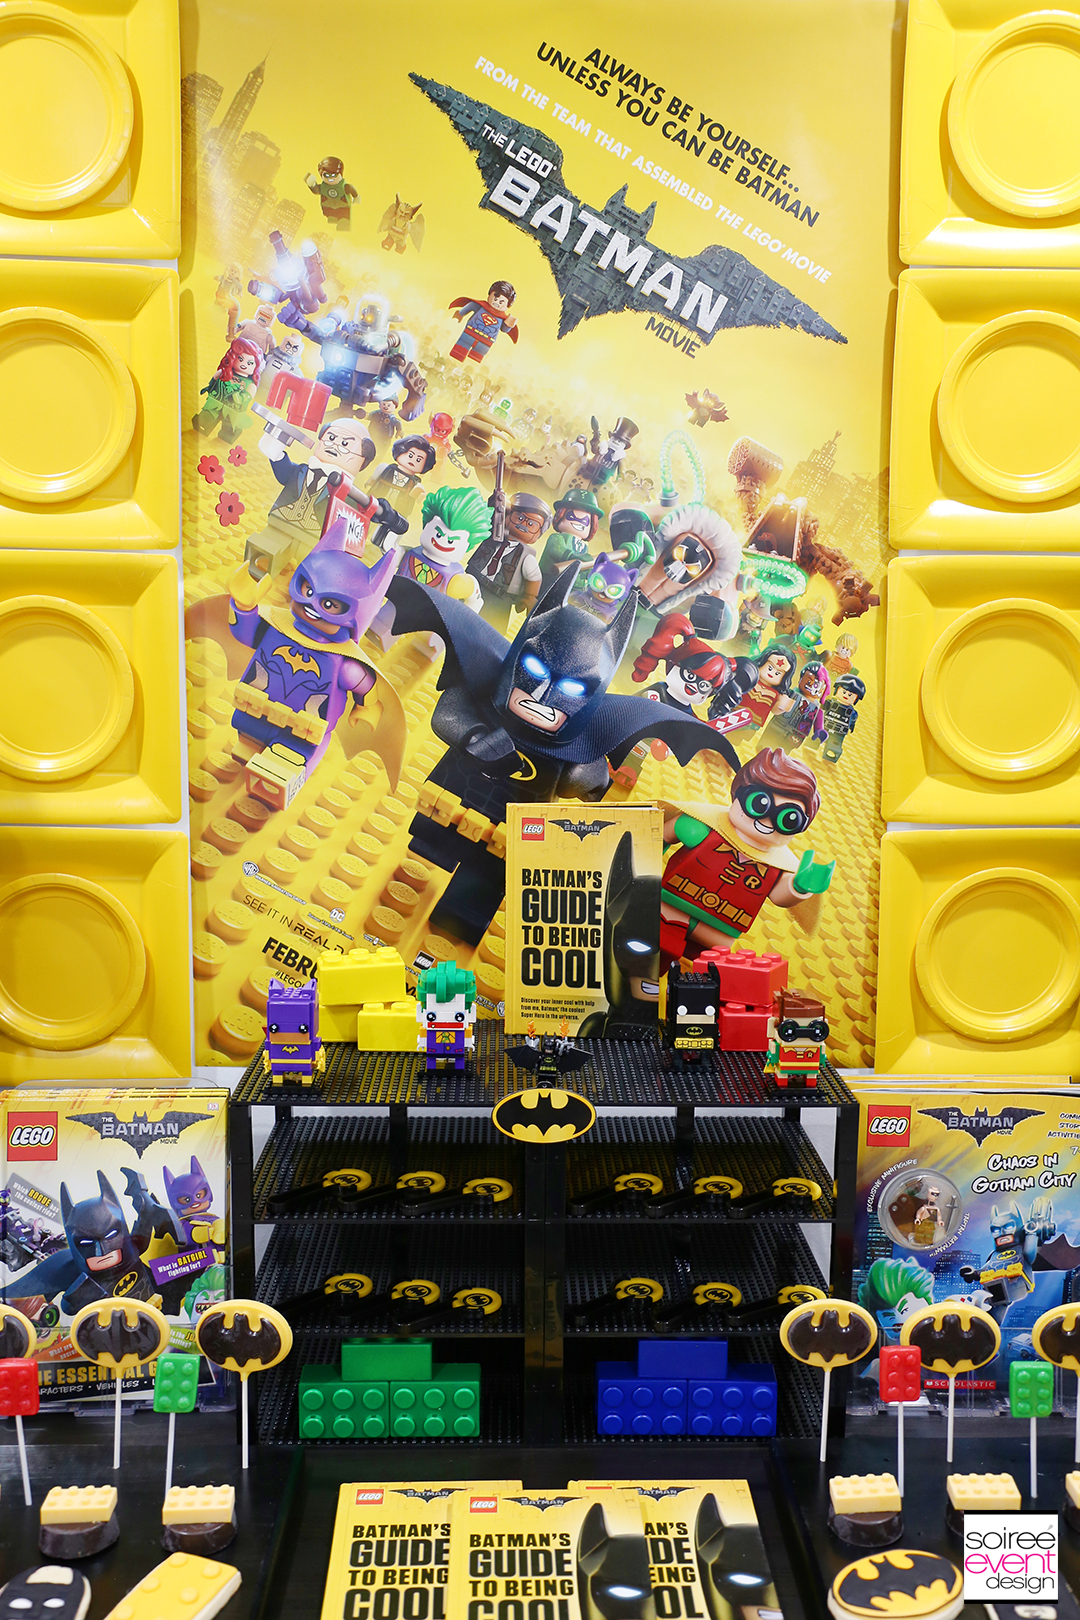 Lego Batman Party Ideas - Batman Party Dessert Table